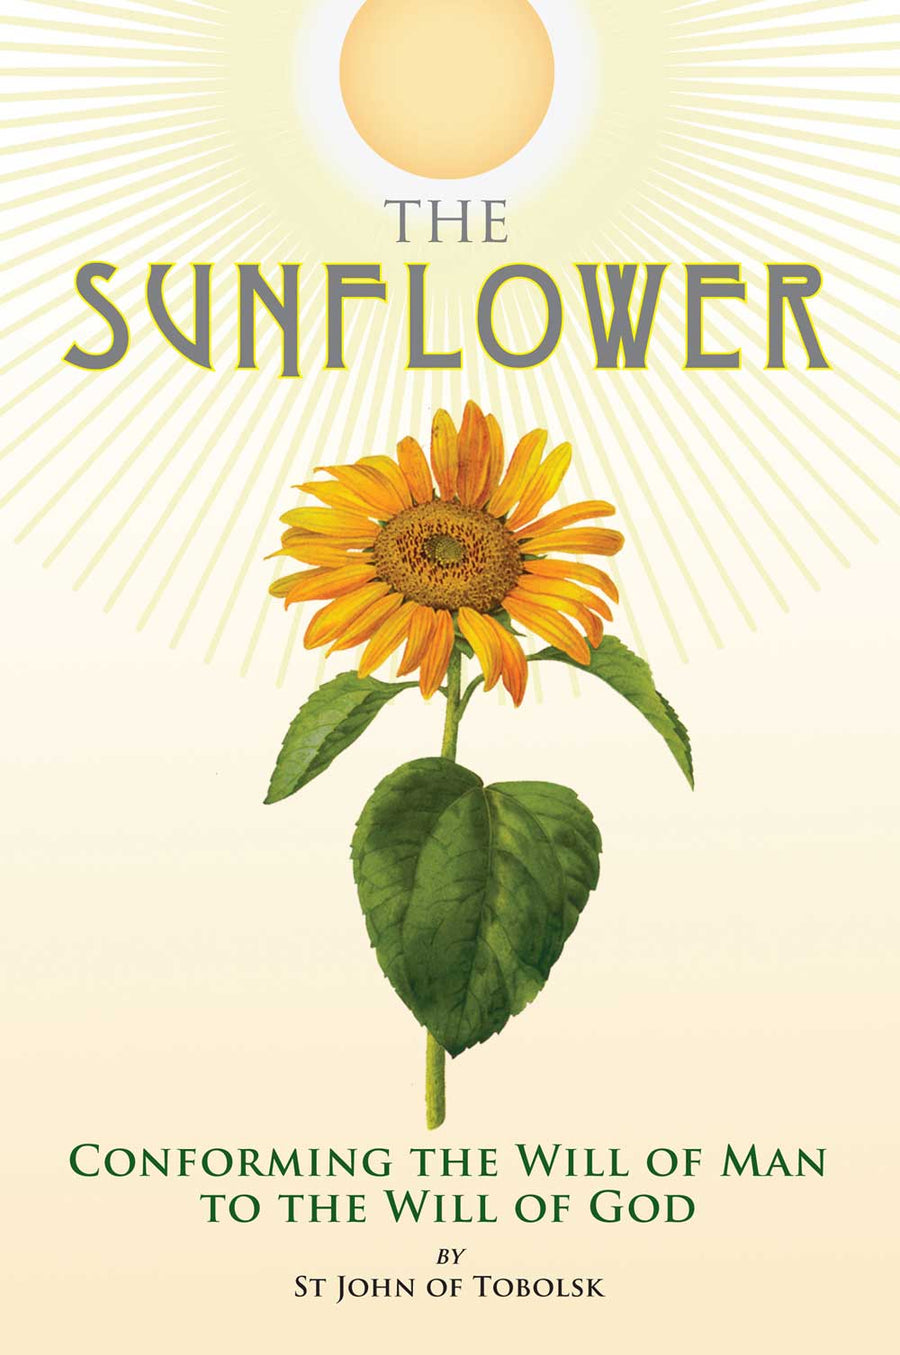 The Sunflower - Conforming the Will of Man to the Will of God